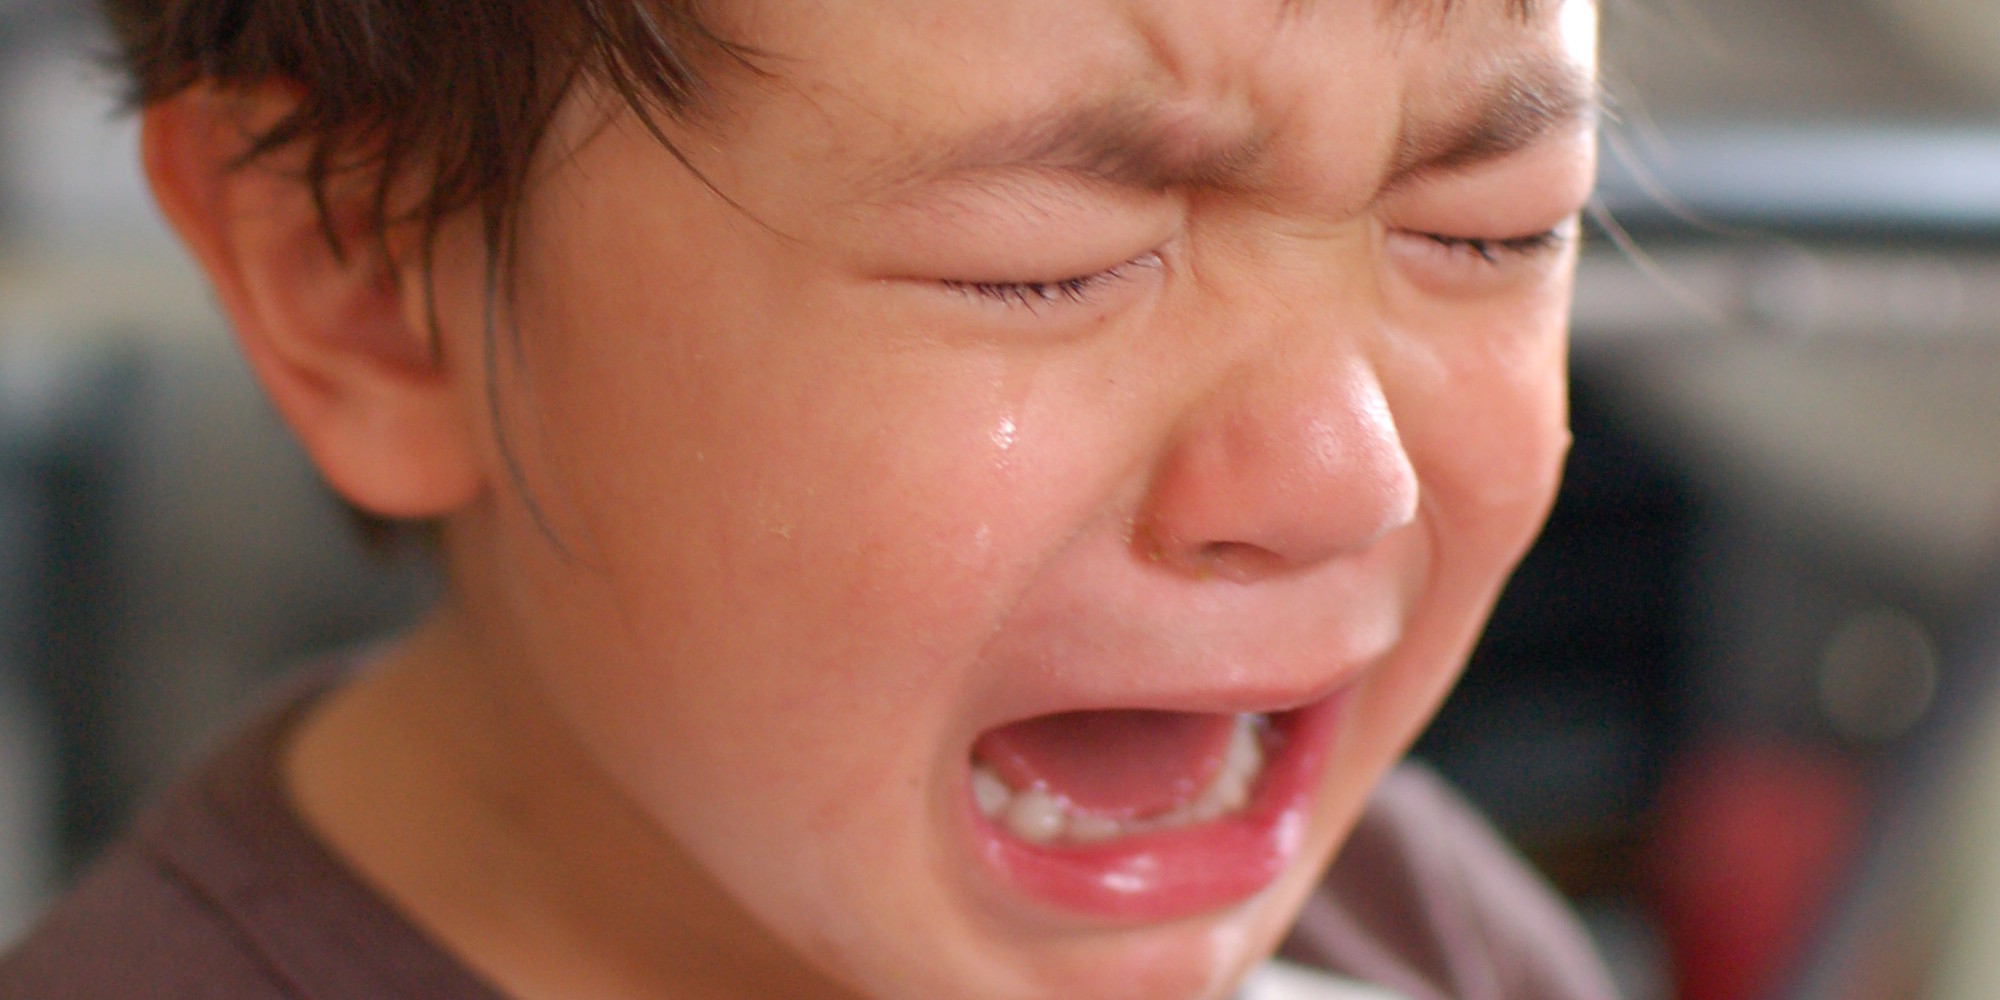 Reasons I'm Crying Over 'Reasons My Son Is Crying' | HuffPost People Crying